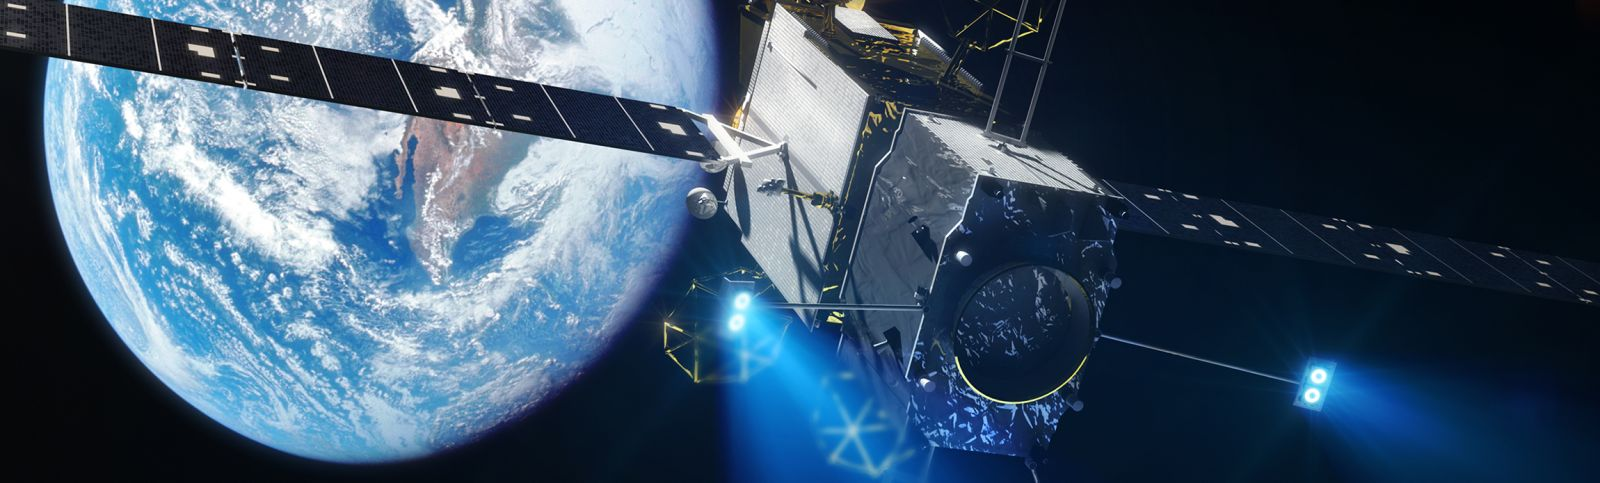 In this artist's depiction the MEV-1 spacecraft, attached to a customer's satellite - extending its operational life. Image Credit: Nathan Koga / SpaceFlight Insider